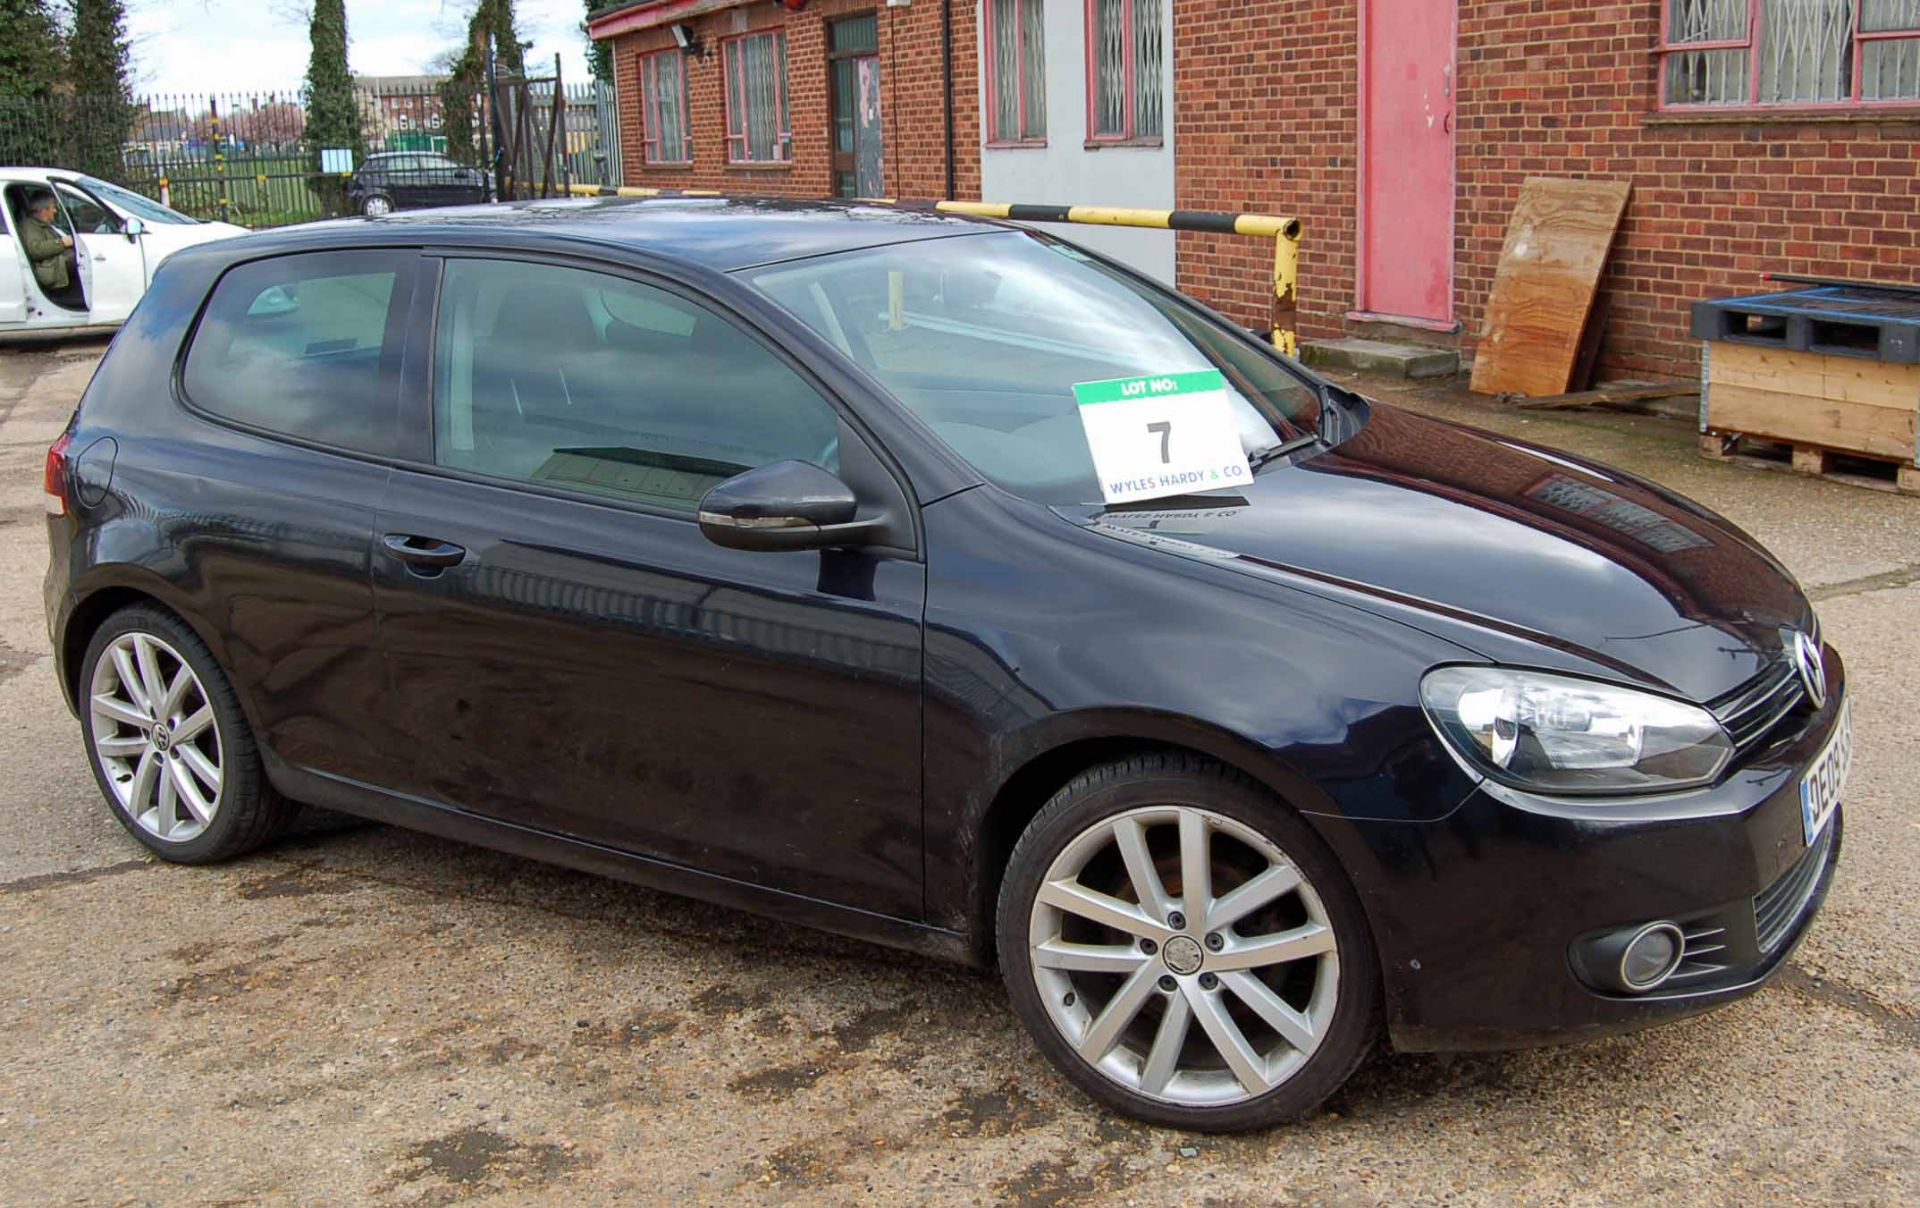 Lot 7 - A VOLKSWAGEN Golf GT 2.0 TDi 140 3-Door, 6-Speed, Diesel, Manual Hatchback, Registration No. DE09